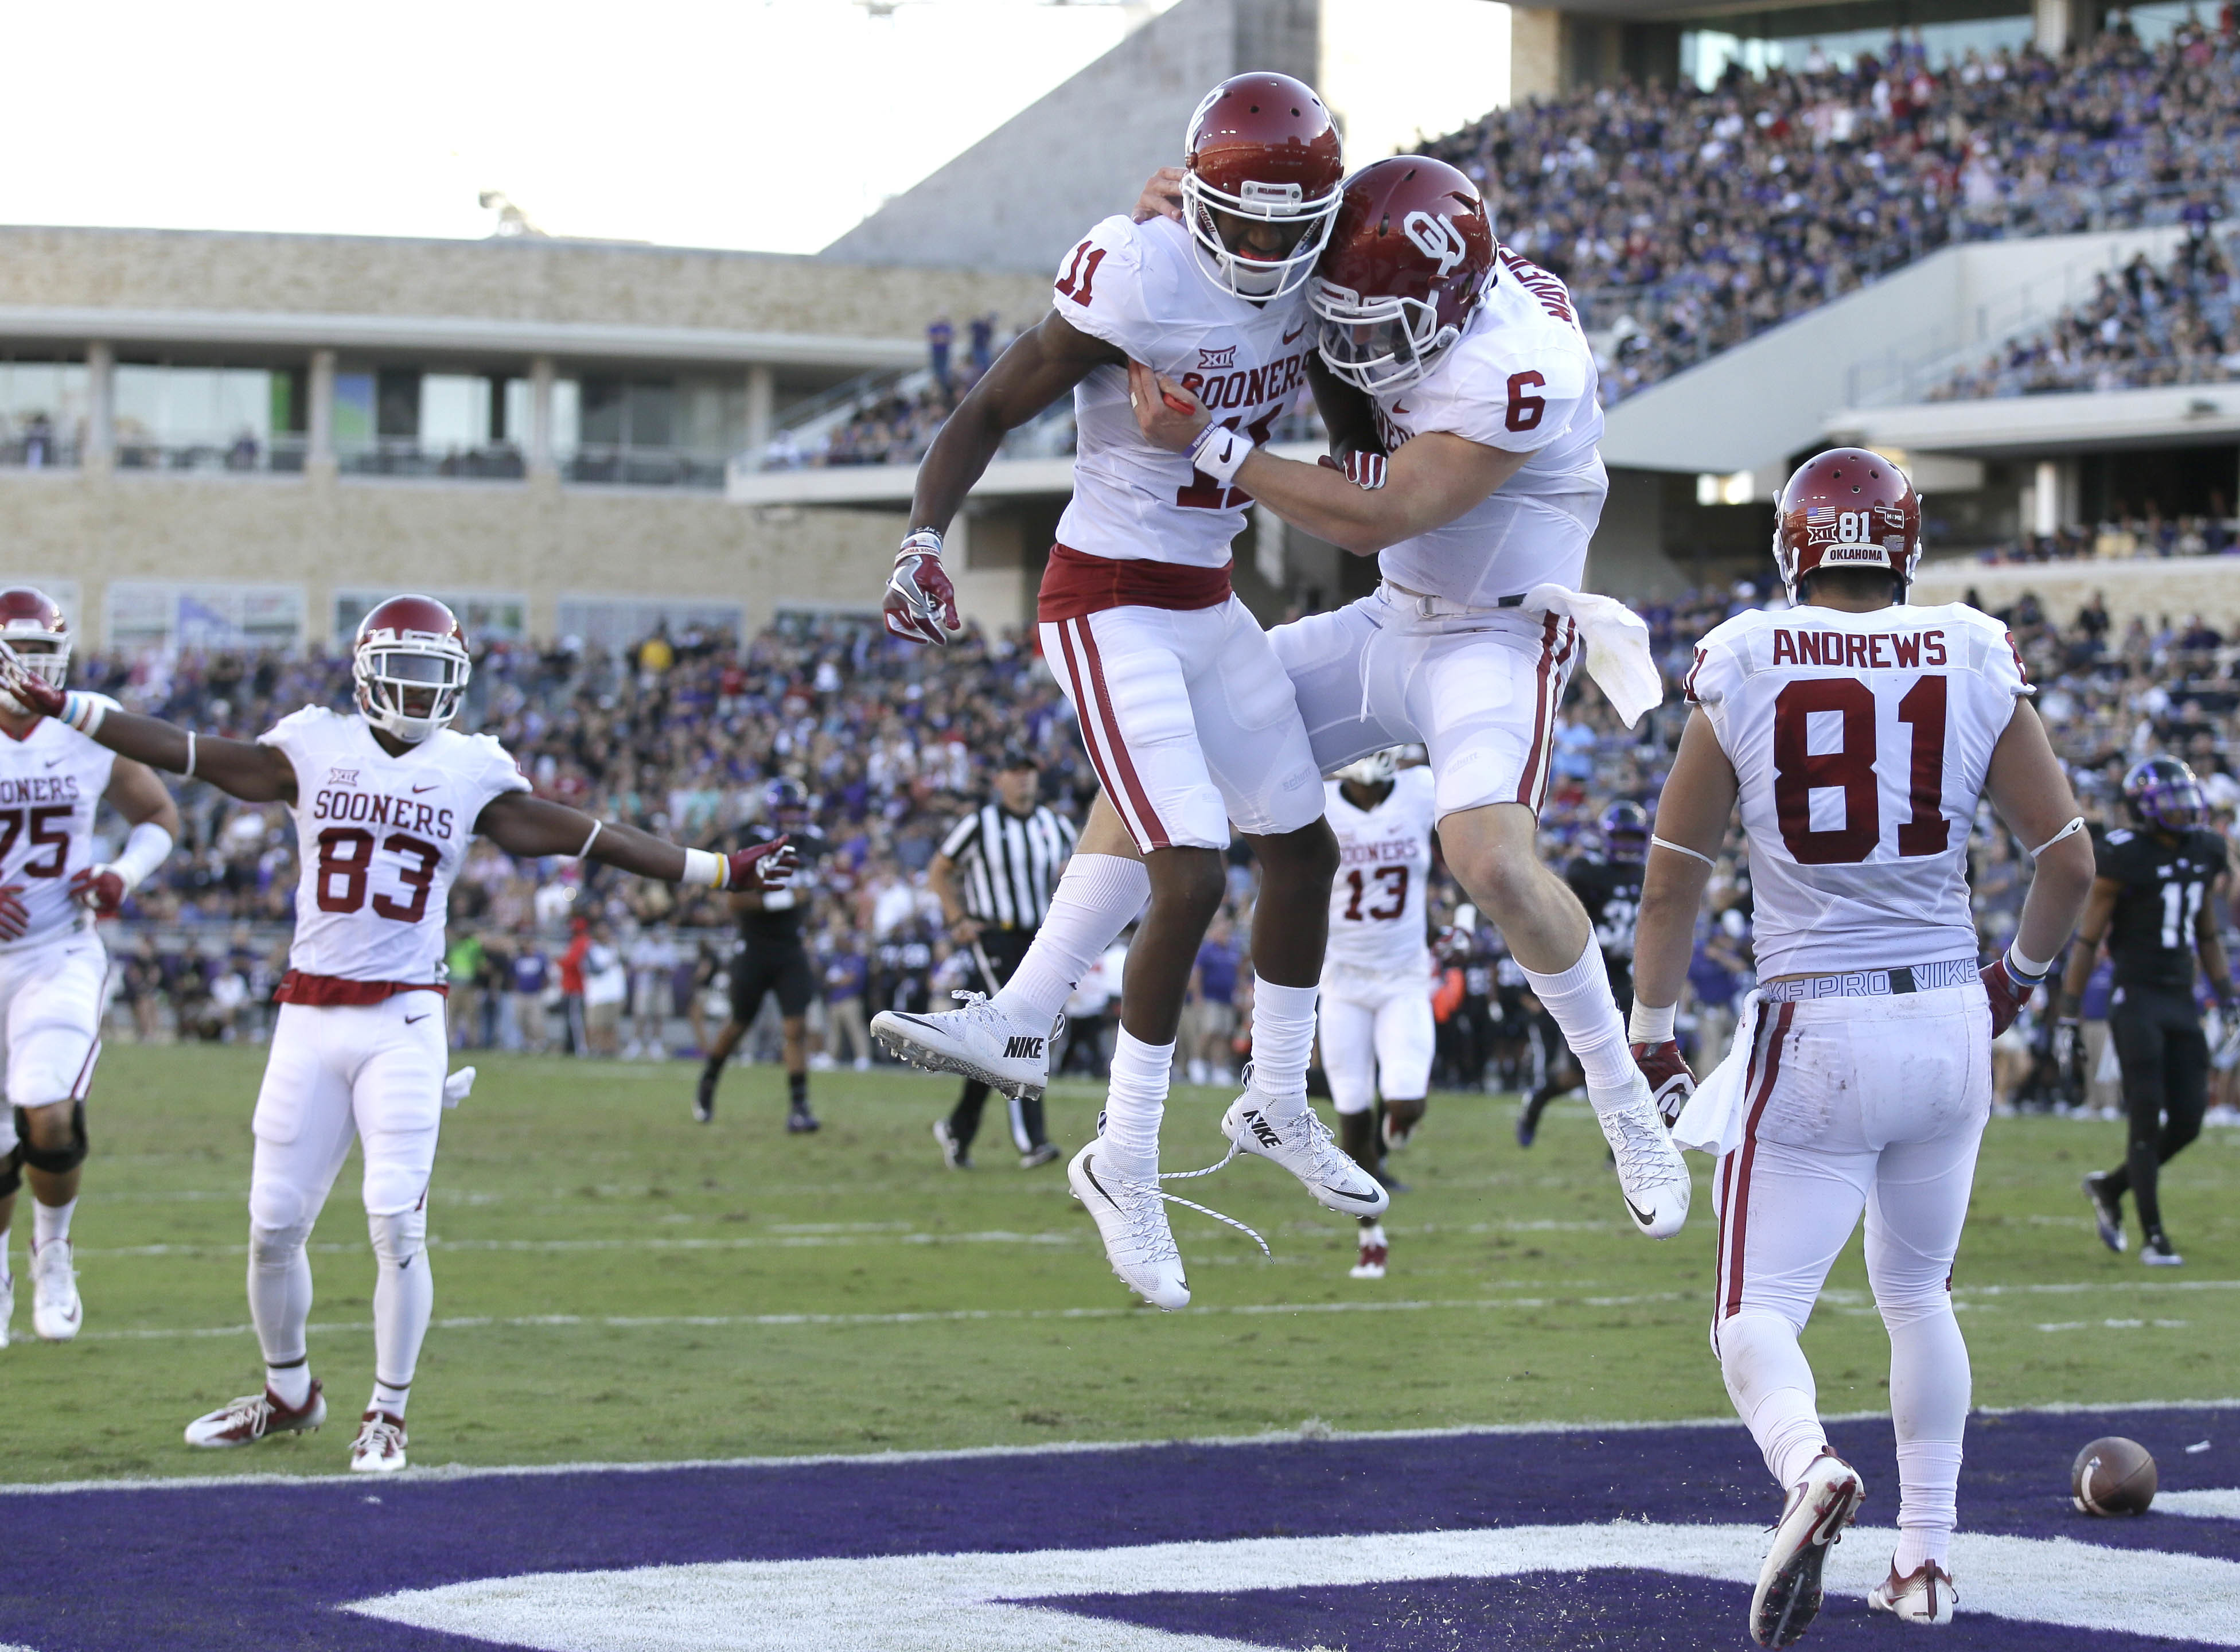 FILE - In this Oct. 1, 2016, file photo, Oklahoma wide receiver Dede Westbrook (11) celebrates catching a touchdown pass with quarterback Baker Mayfield (6) as wide receiver Mark Andrews (81) looks on during the first half of an NCAA college football game